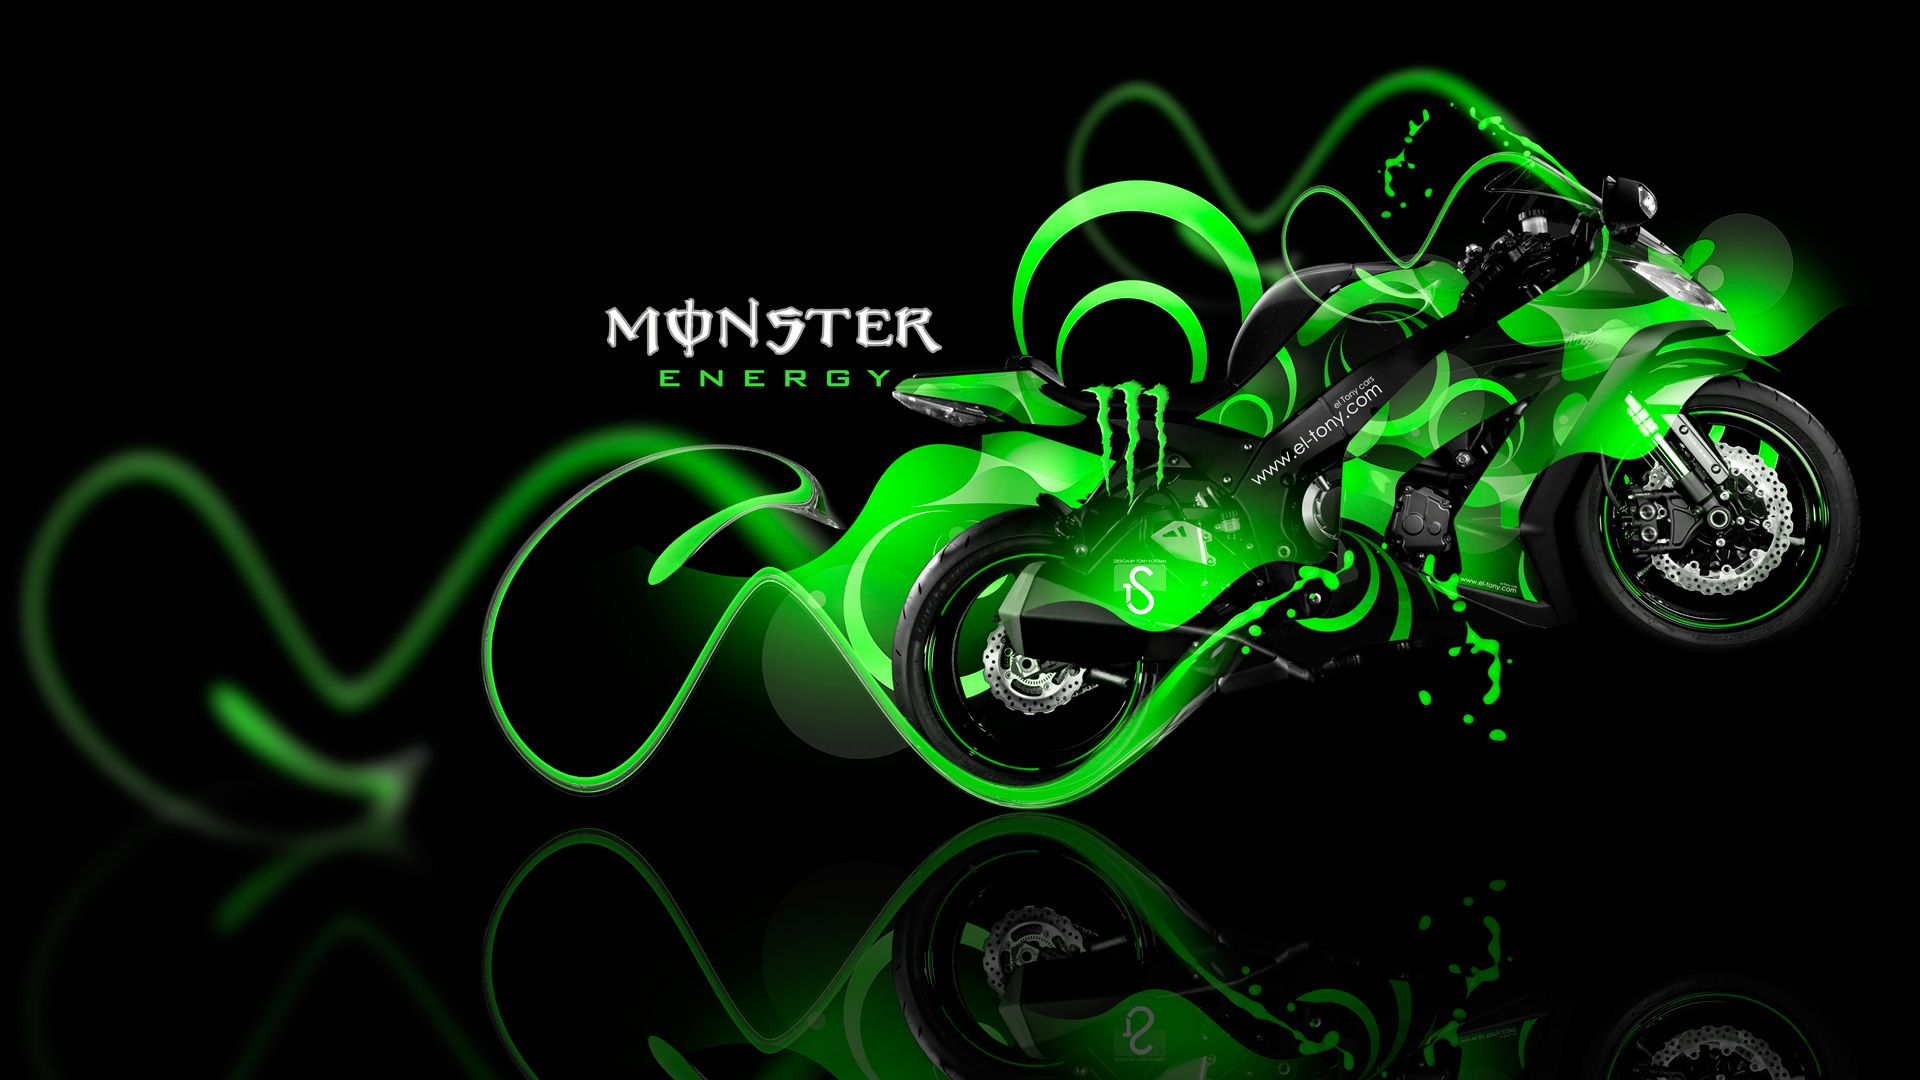 Kawasaki Monster Energy Wallpapers Top Free Kawasaki